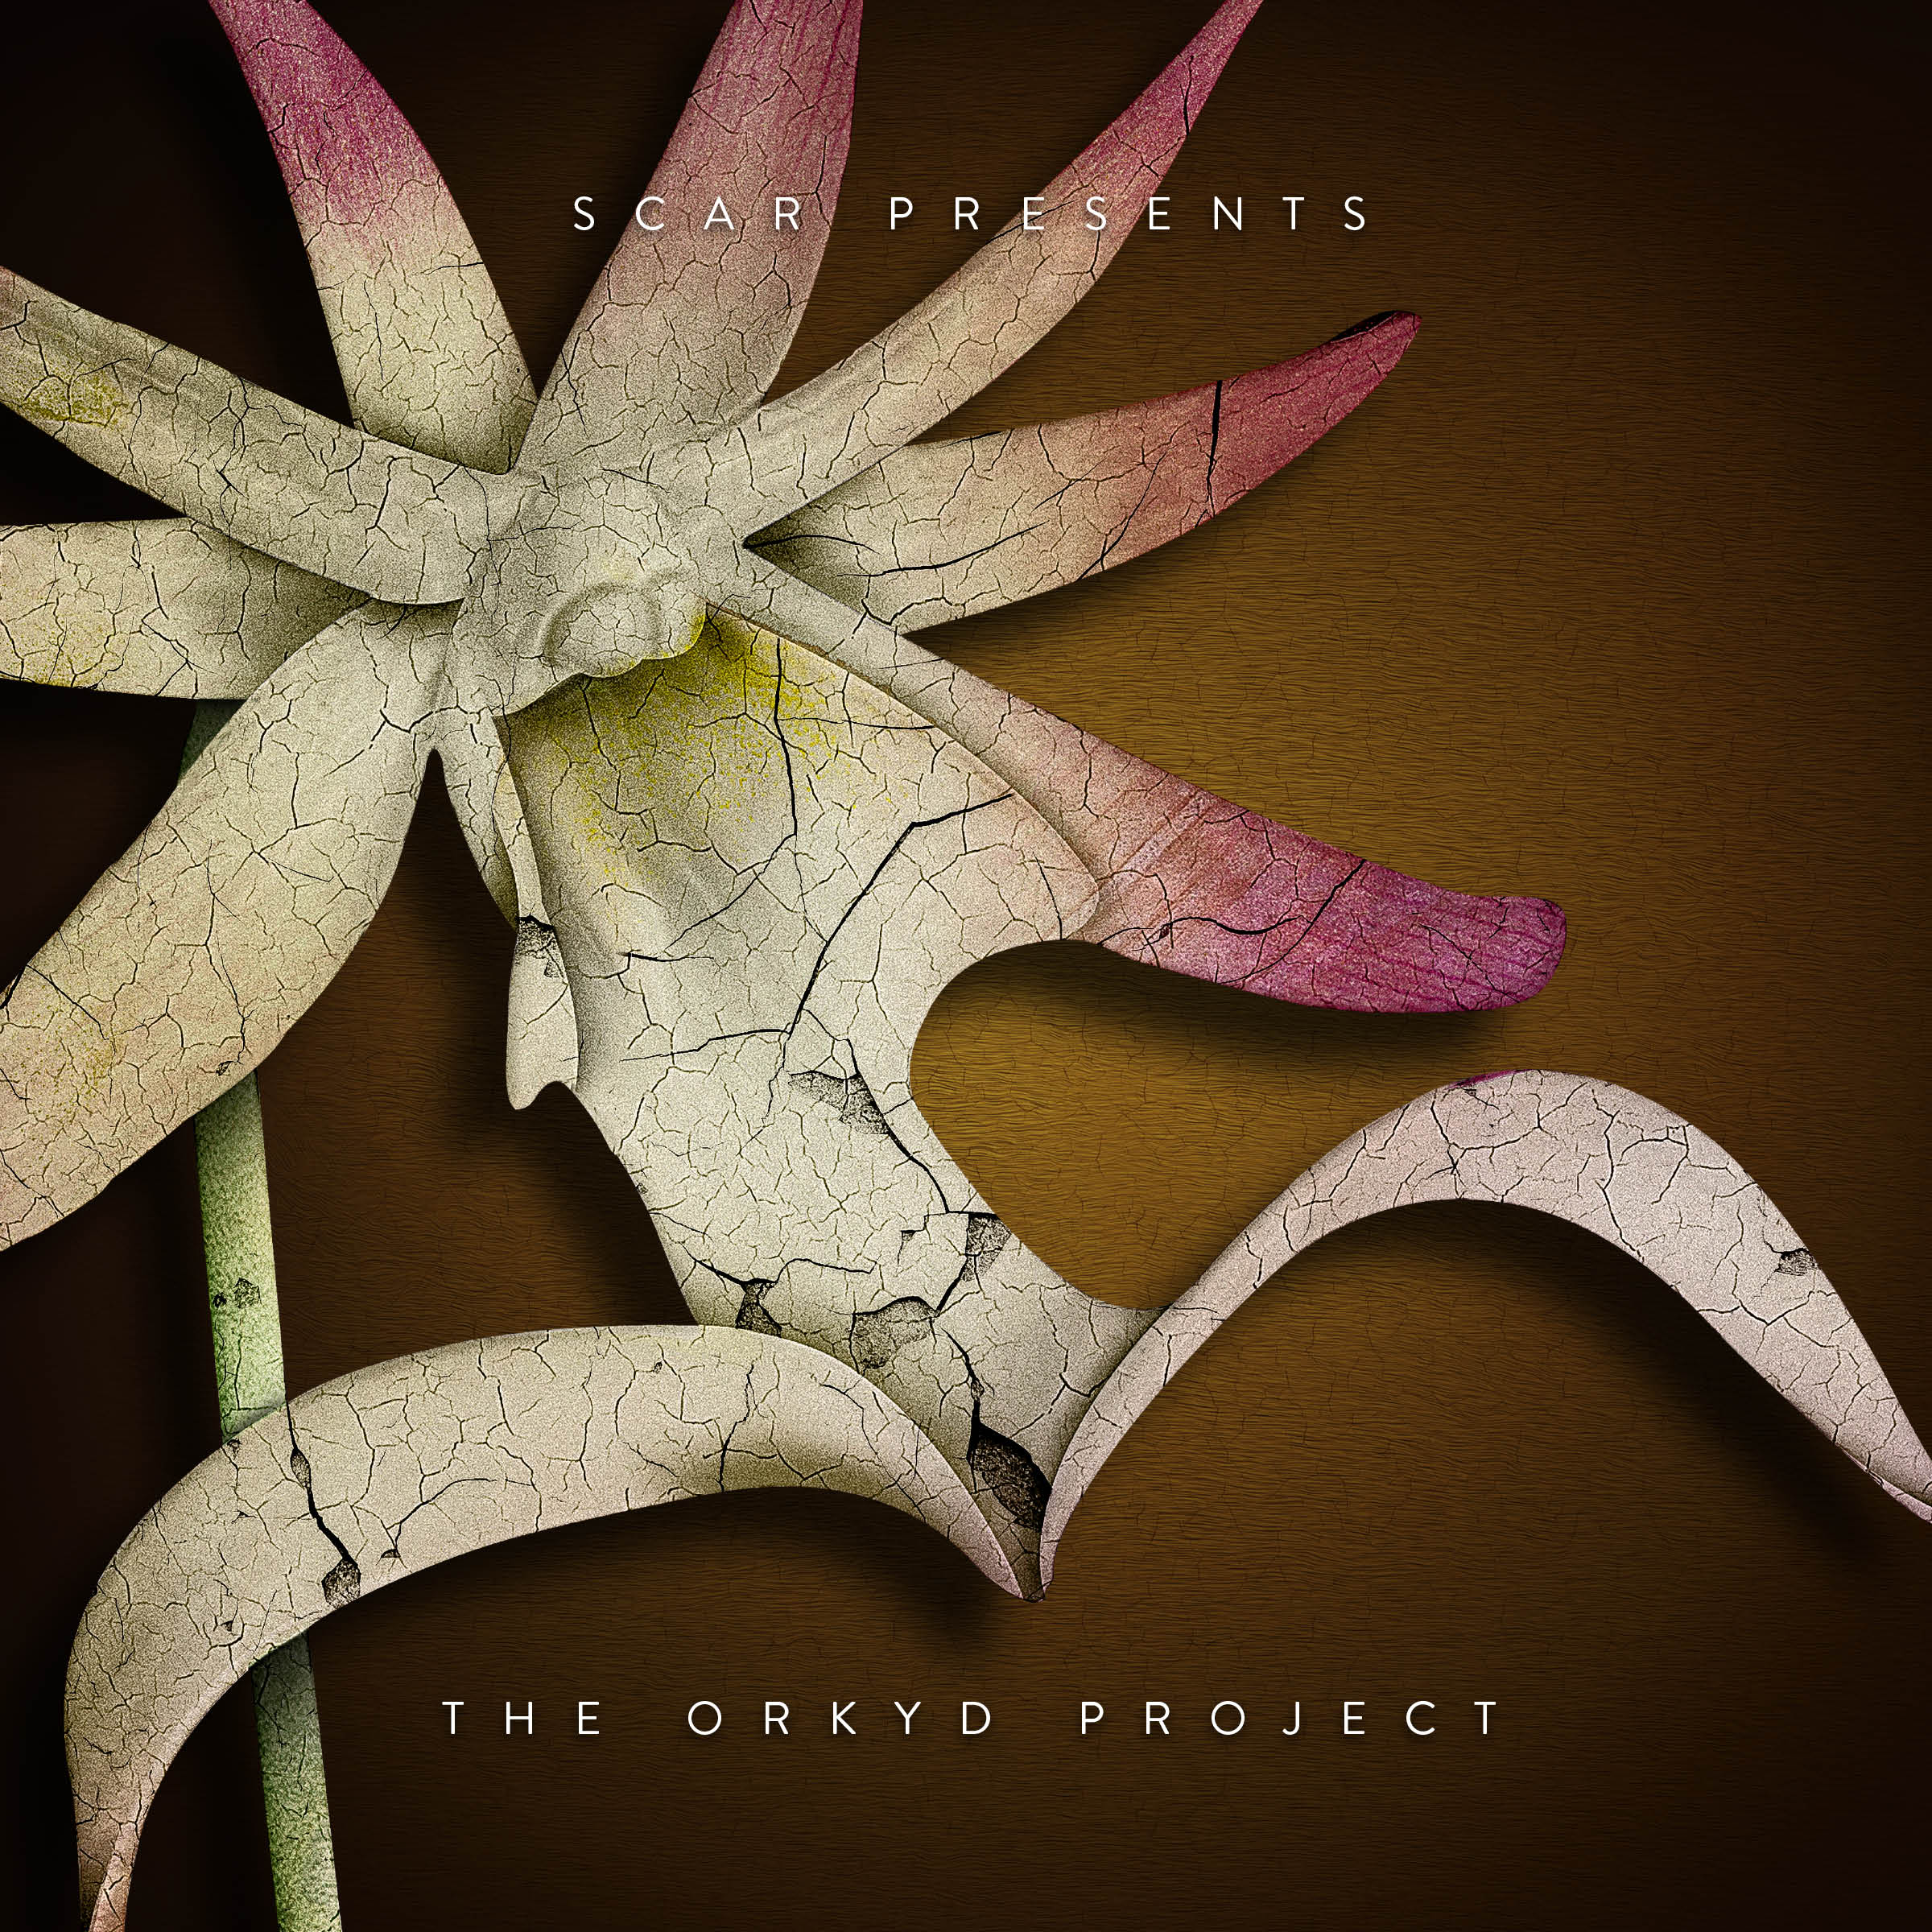 Scar/THE ORKYD PROJECT DLP